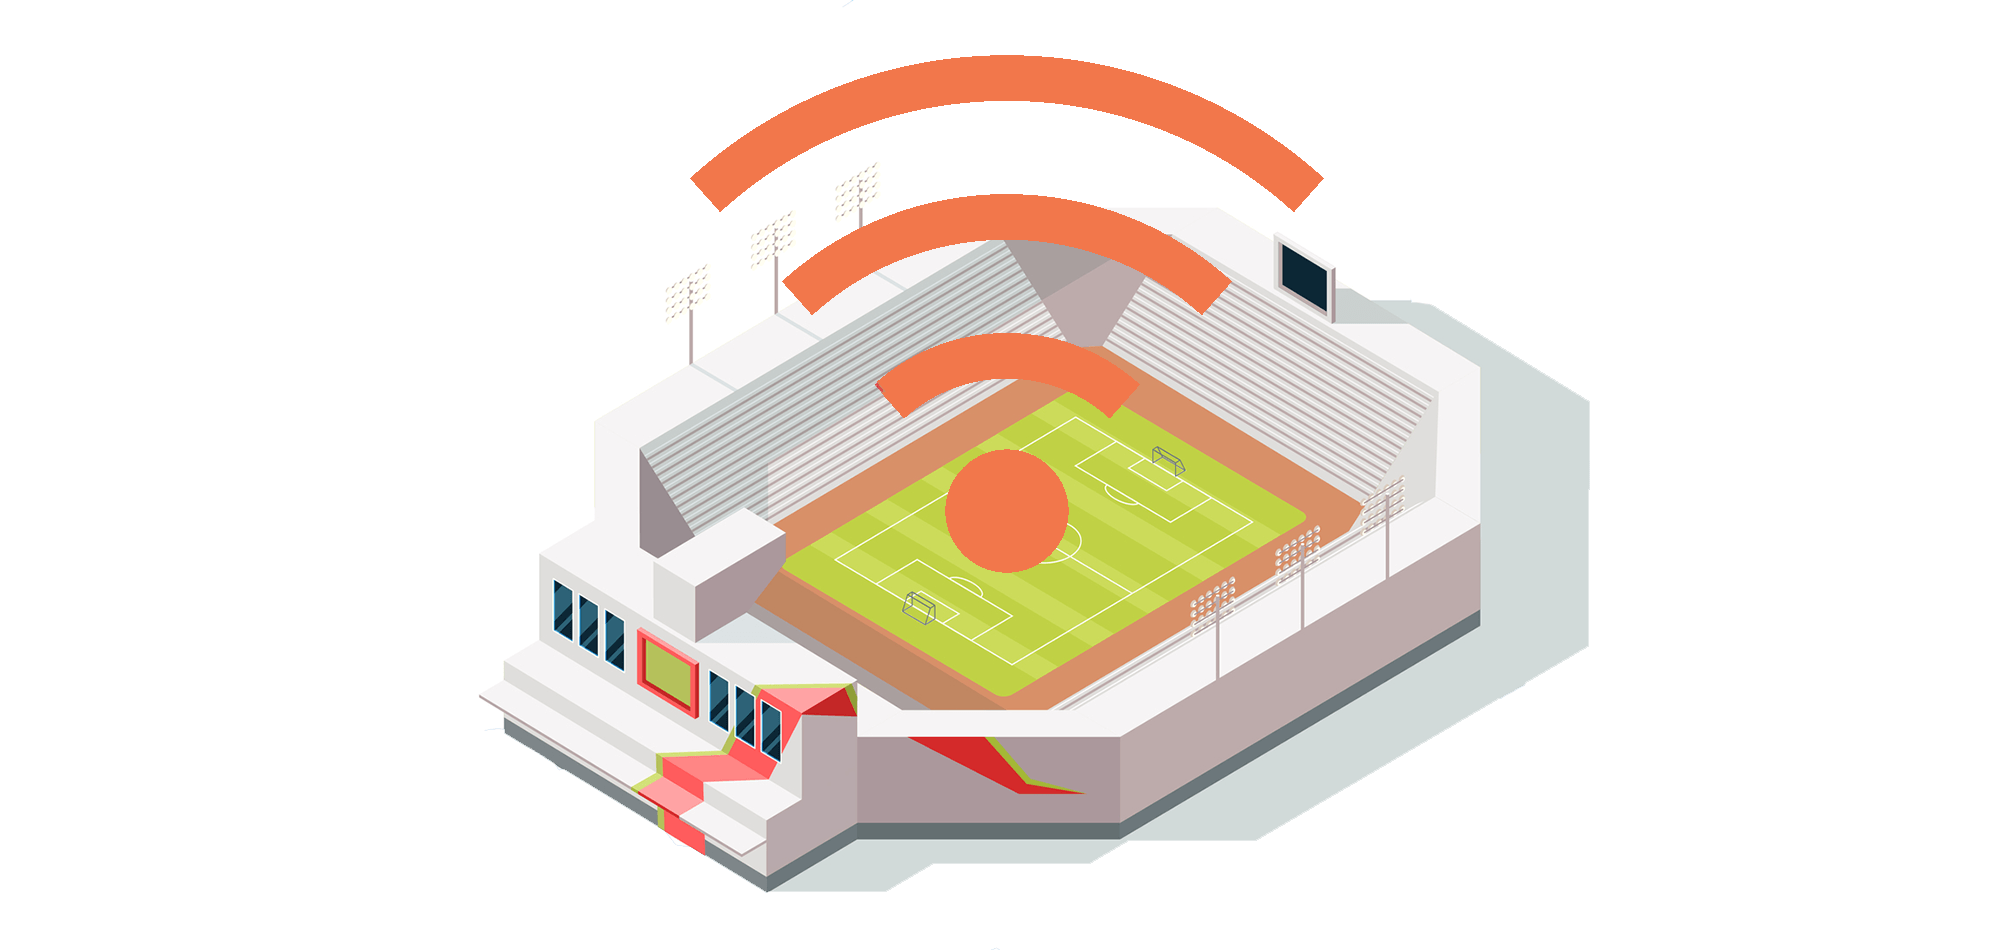 Arena WiFi: 5 Considerations When Designing a Wireless Network for Sports Venues